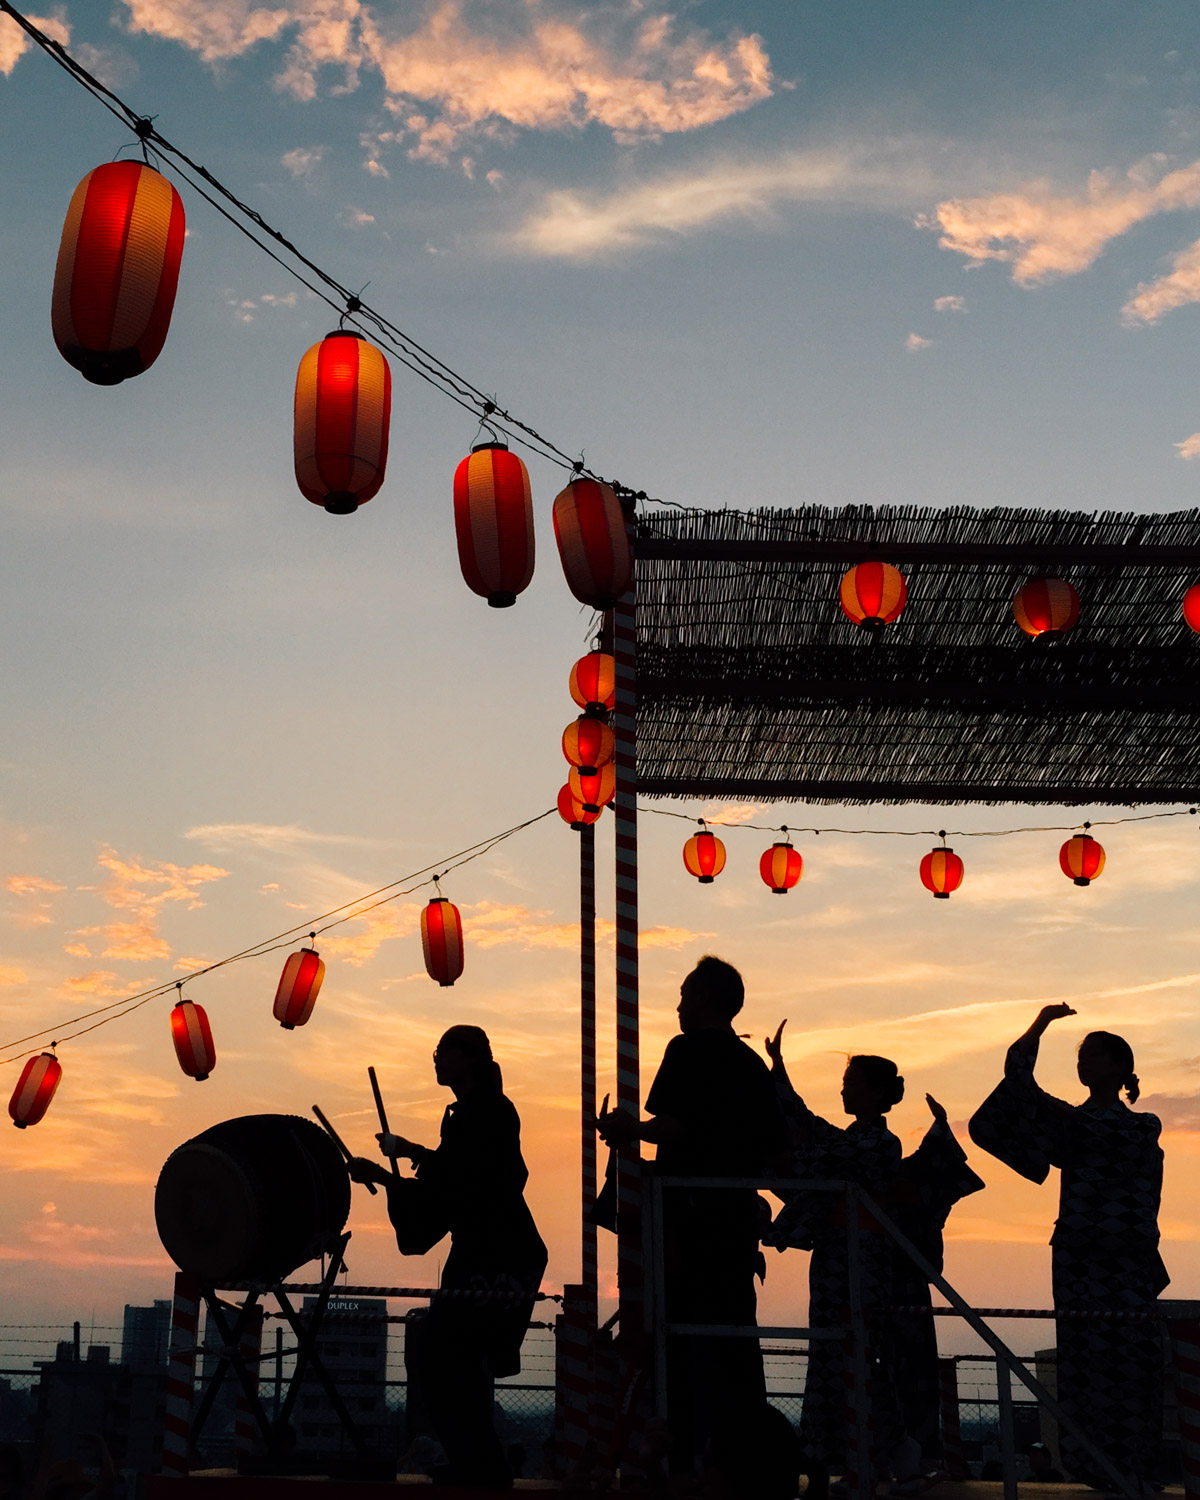 Silhouettes of dancers and drummers against the sunset at a Bon Odori dance festival in Kichijoji, Tokyo, Japan